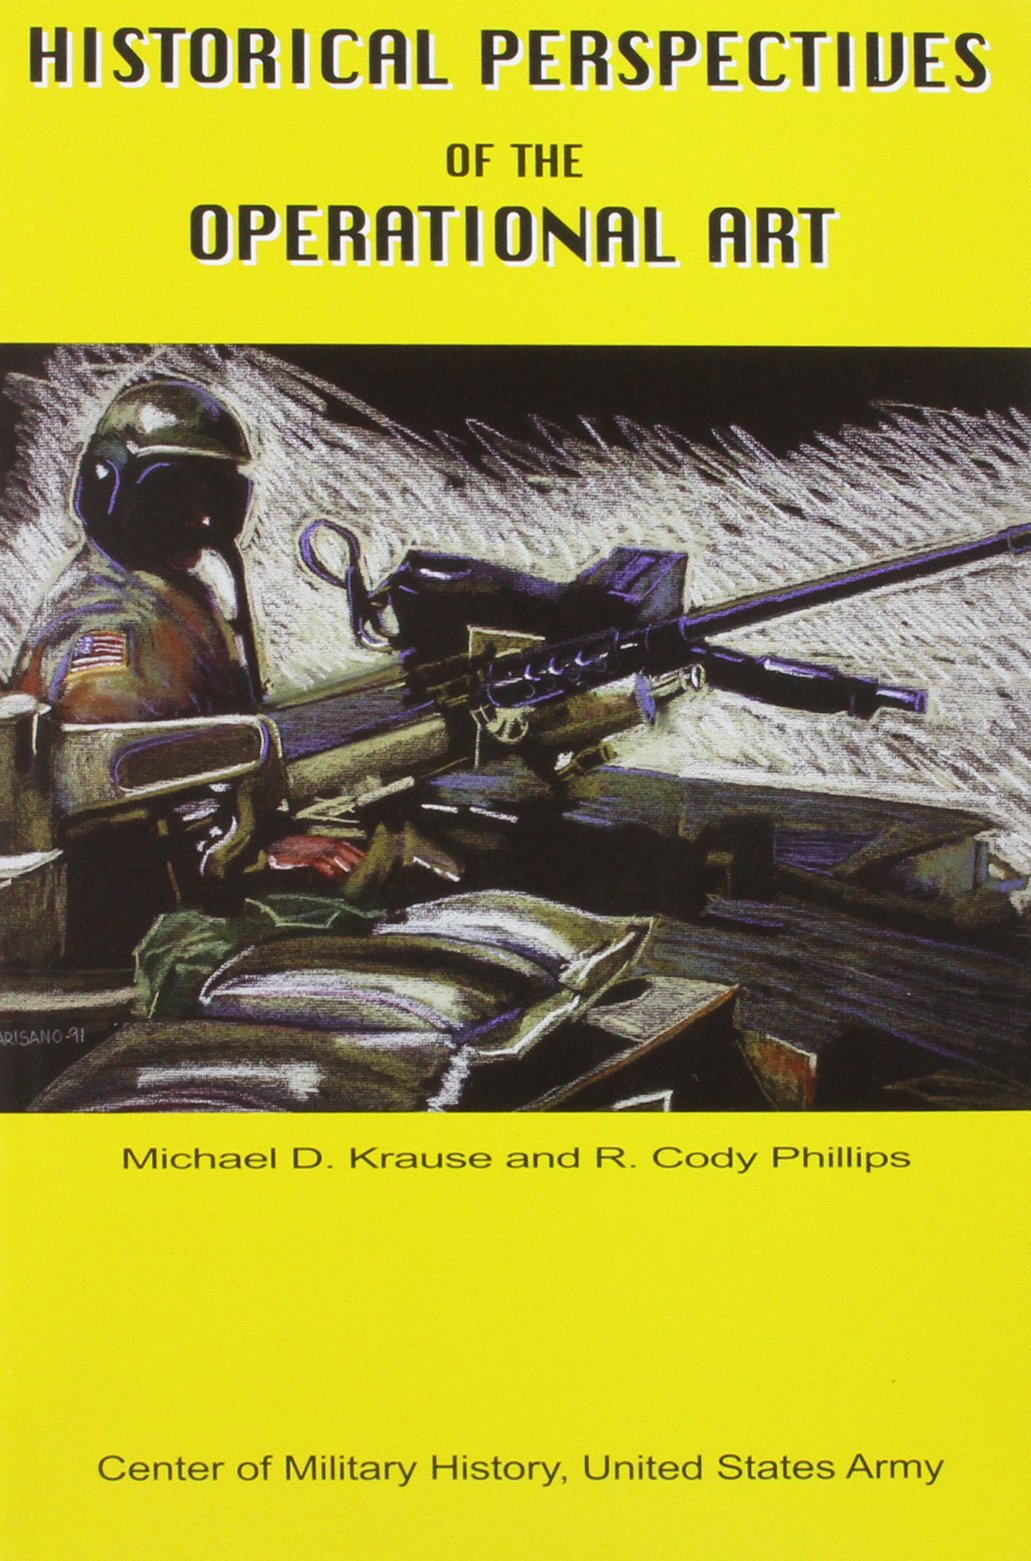 Download Historical Perspectives of the Operational Art (Center of Military History Publication) pdf